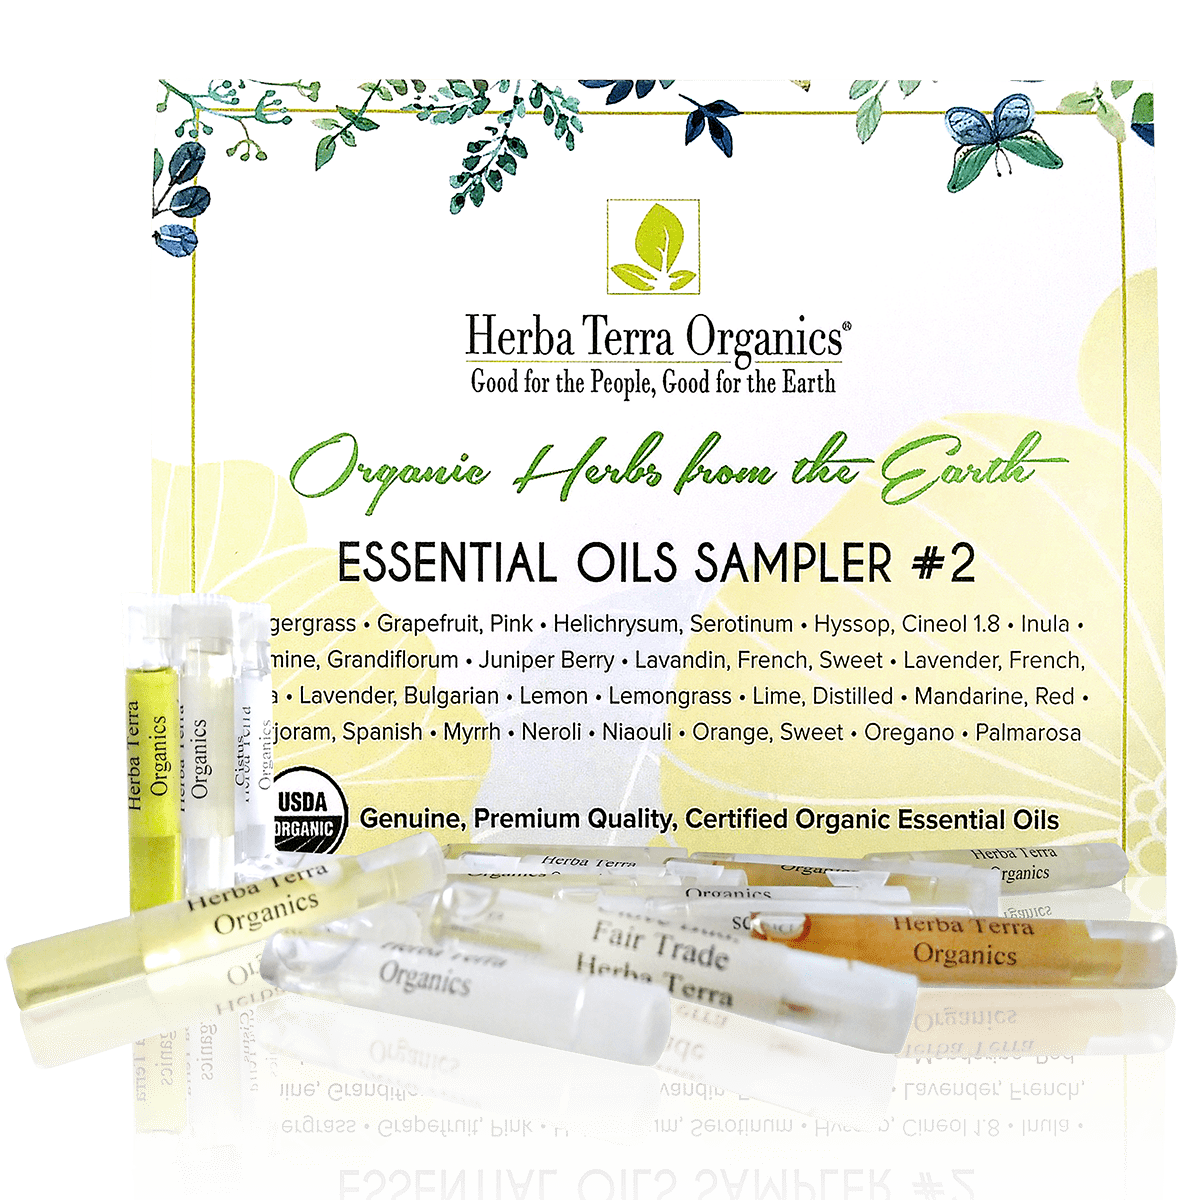 Essential Oils Sampler #2